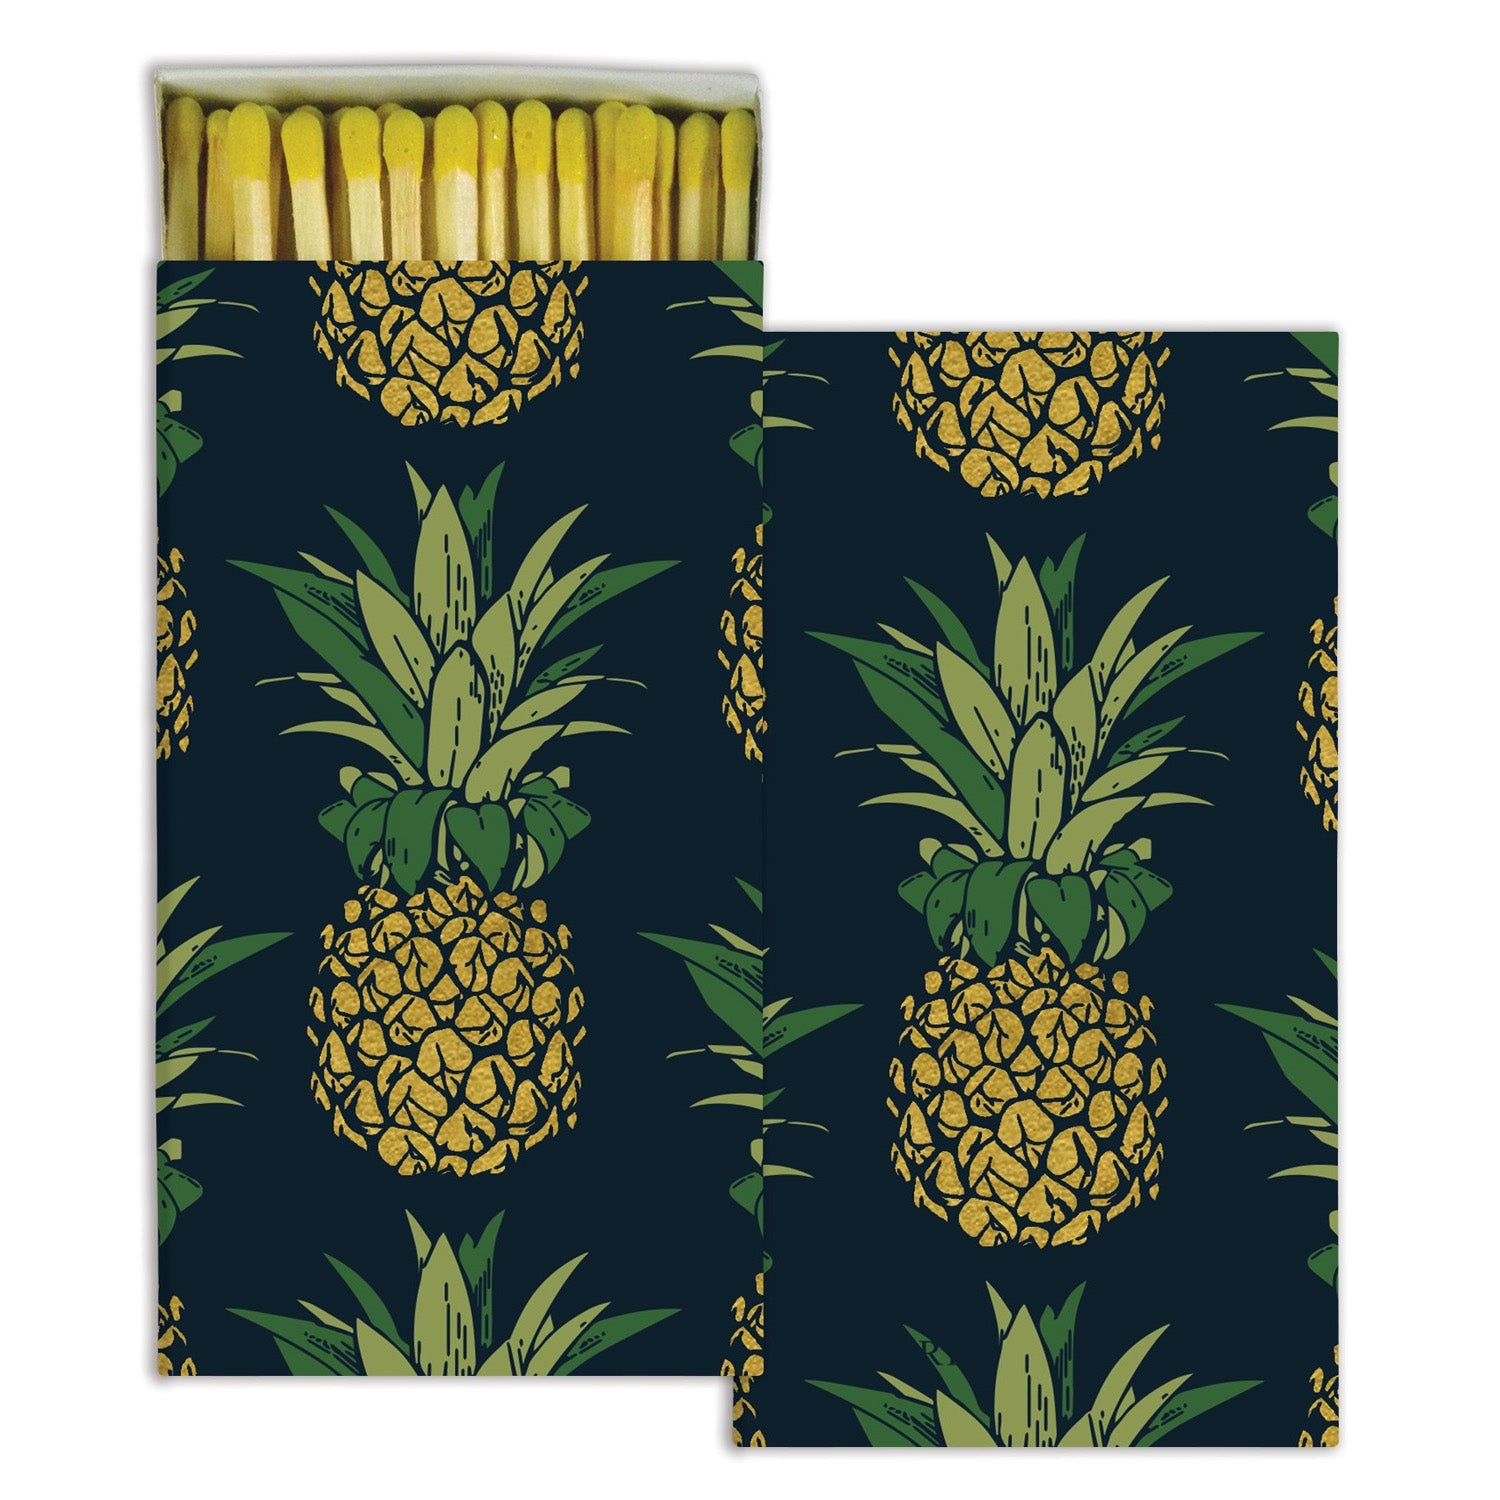 Matches - Pineapple